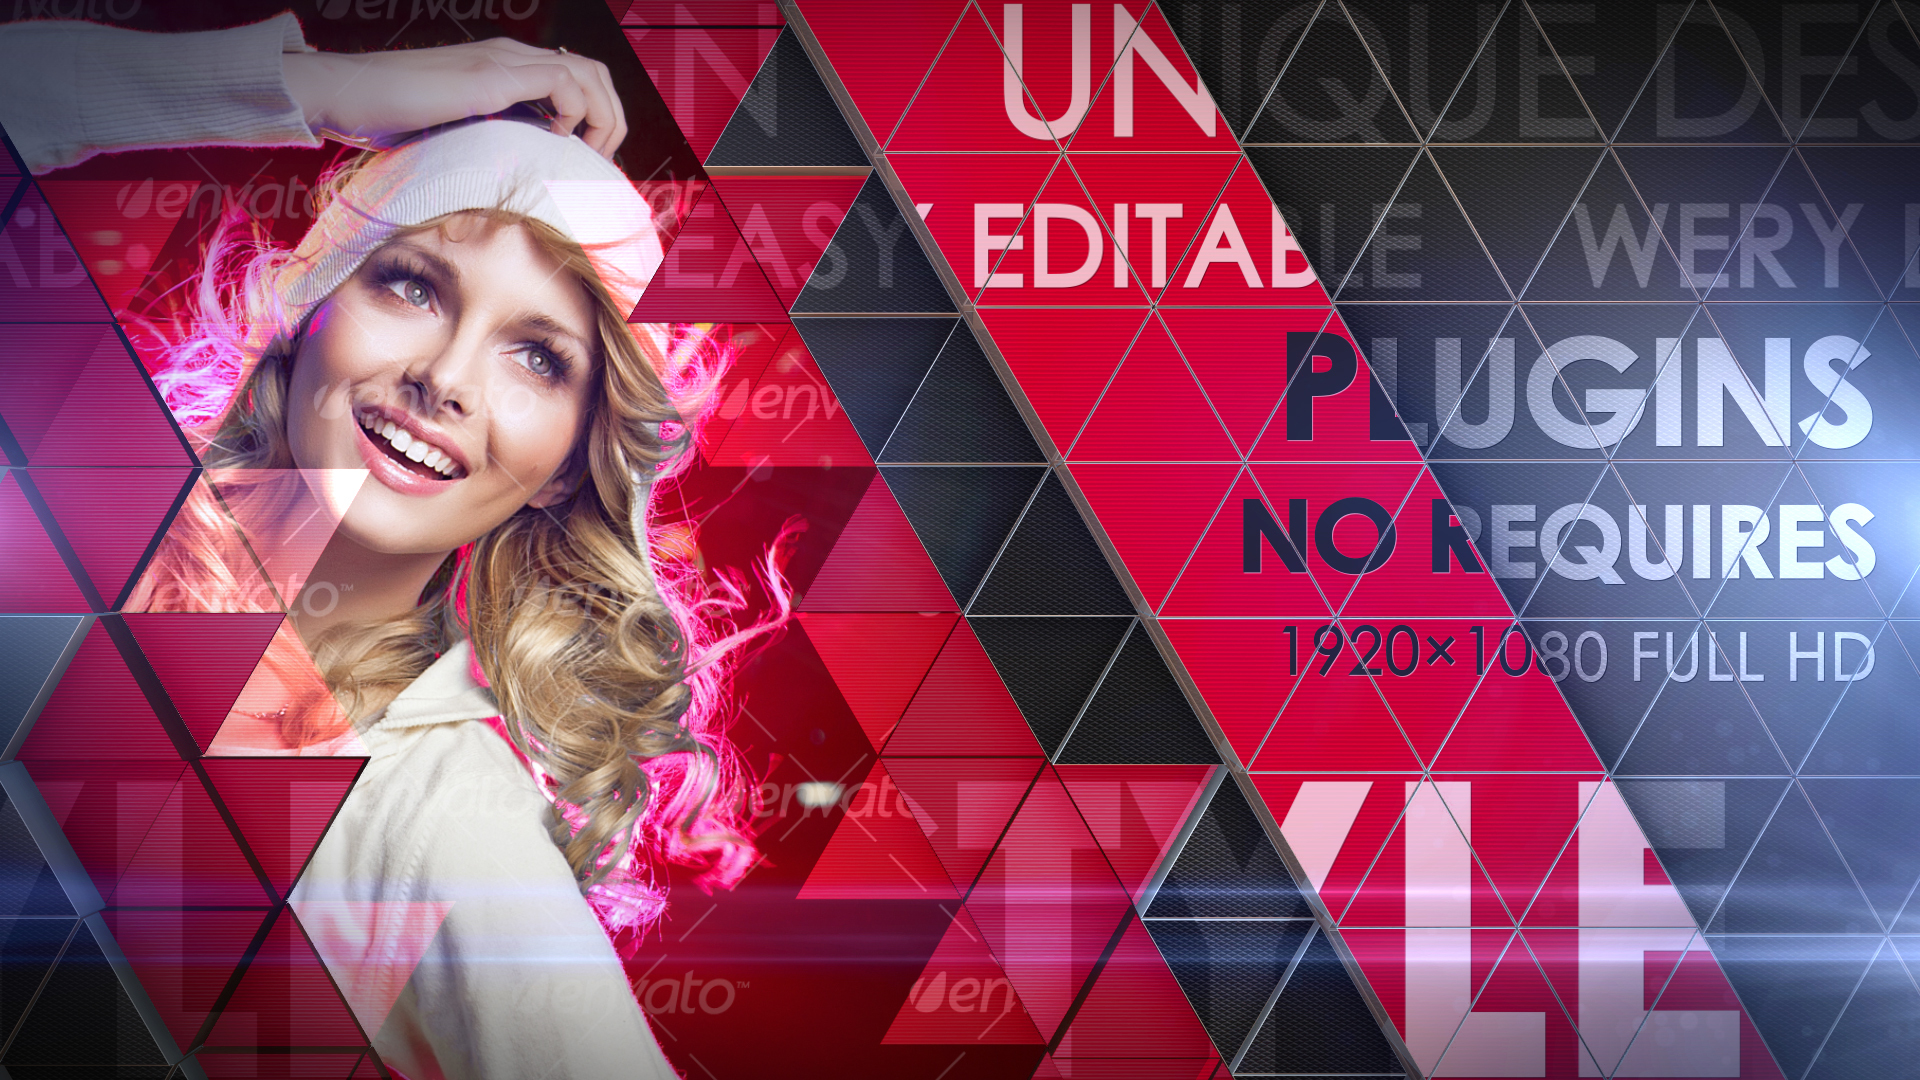 Videohive Fashion Promo 4672290 Vector Photoshop Psdafter Effects Tutorials Template 3d